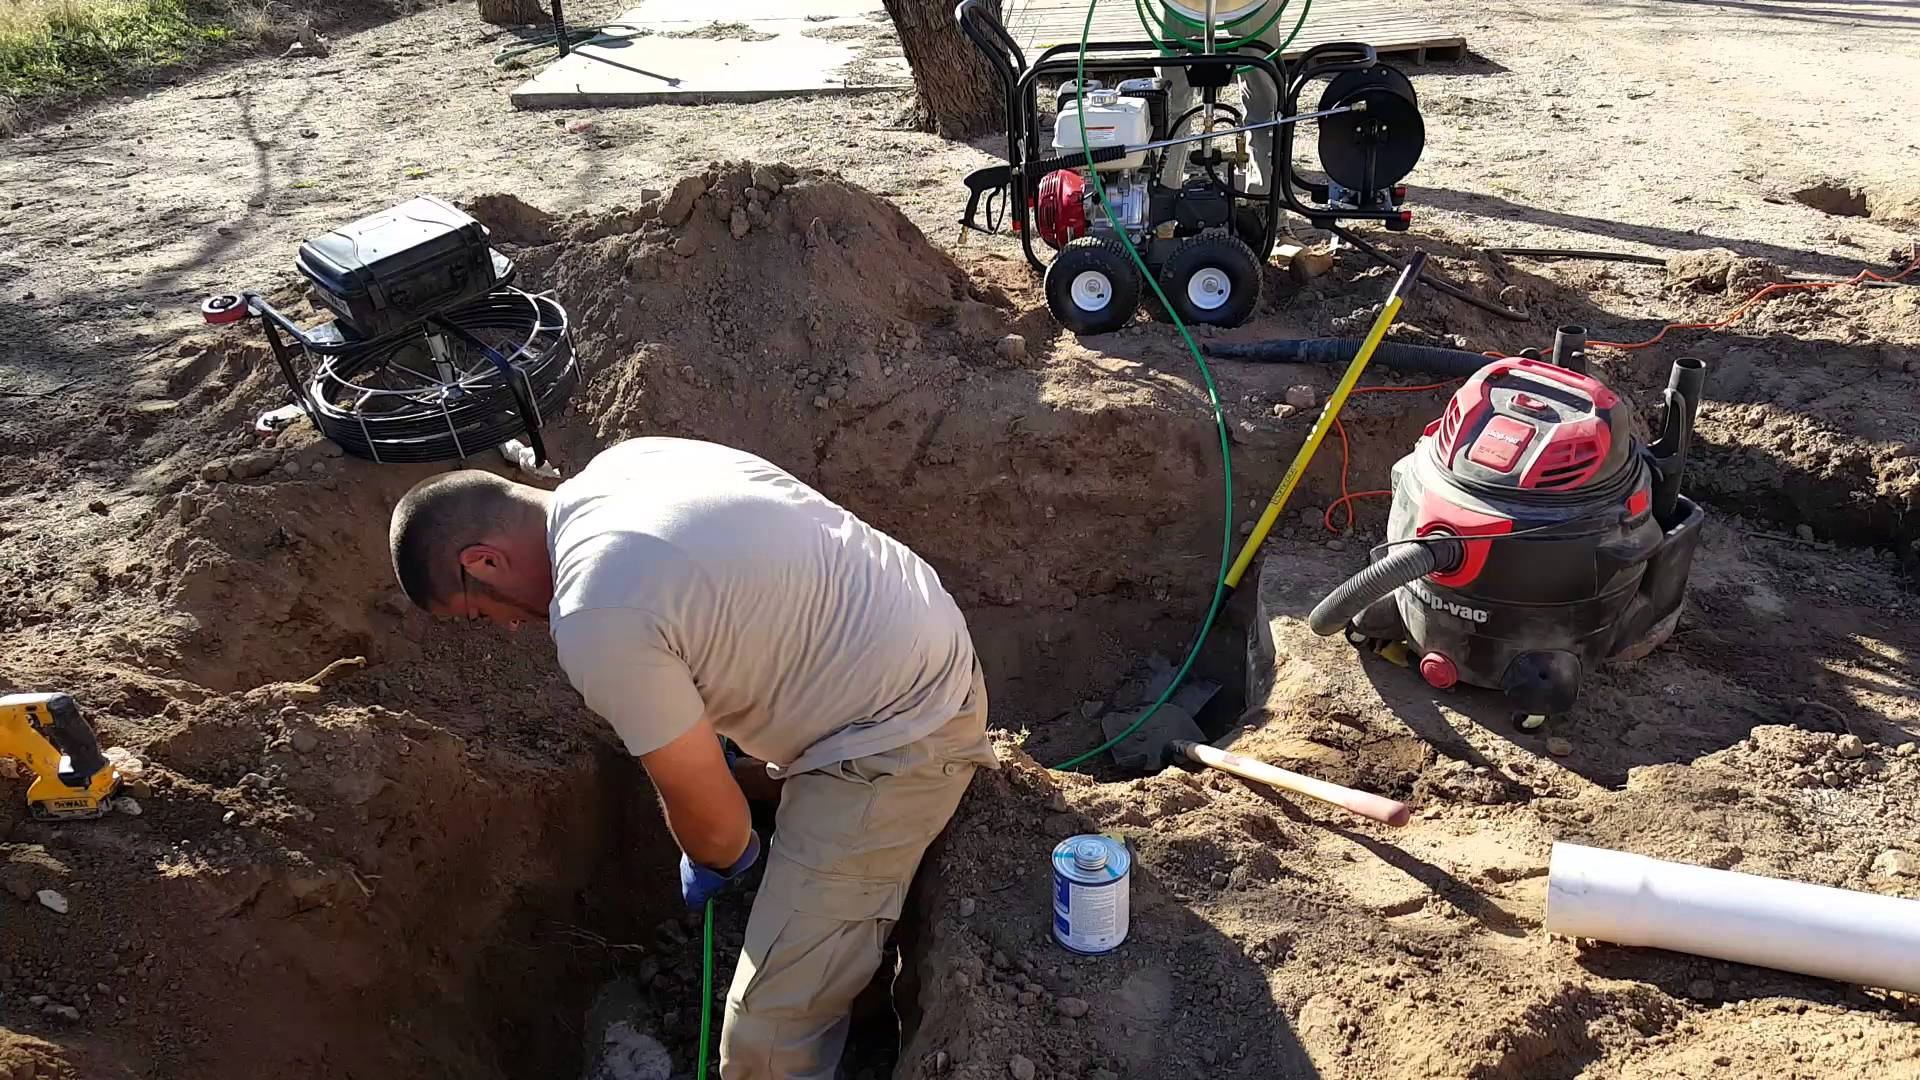 Abernathy-Lubbock TX Septic Tank Pumping, Installation, & Repairs-We offer Septic Service & Repairs, Septic Tank Installations, Septic Tank Cleaning, Commercial, Septic System, Drain Cleaning, Line Snaking, Portable Toilet, Grease Trap Pumping & Cleaning, Septic Tank Pumping, Sewage Pump, Sewer Line Repair, Septic Tank Replacement, Septic Maintenance, Sewer Line Replacement, Porta Potty Rentals, and more.